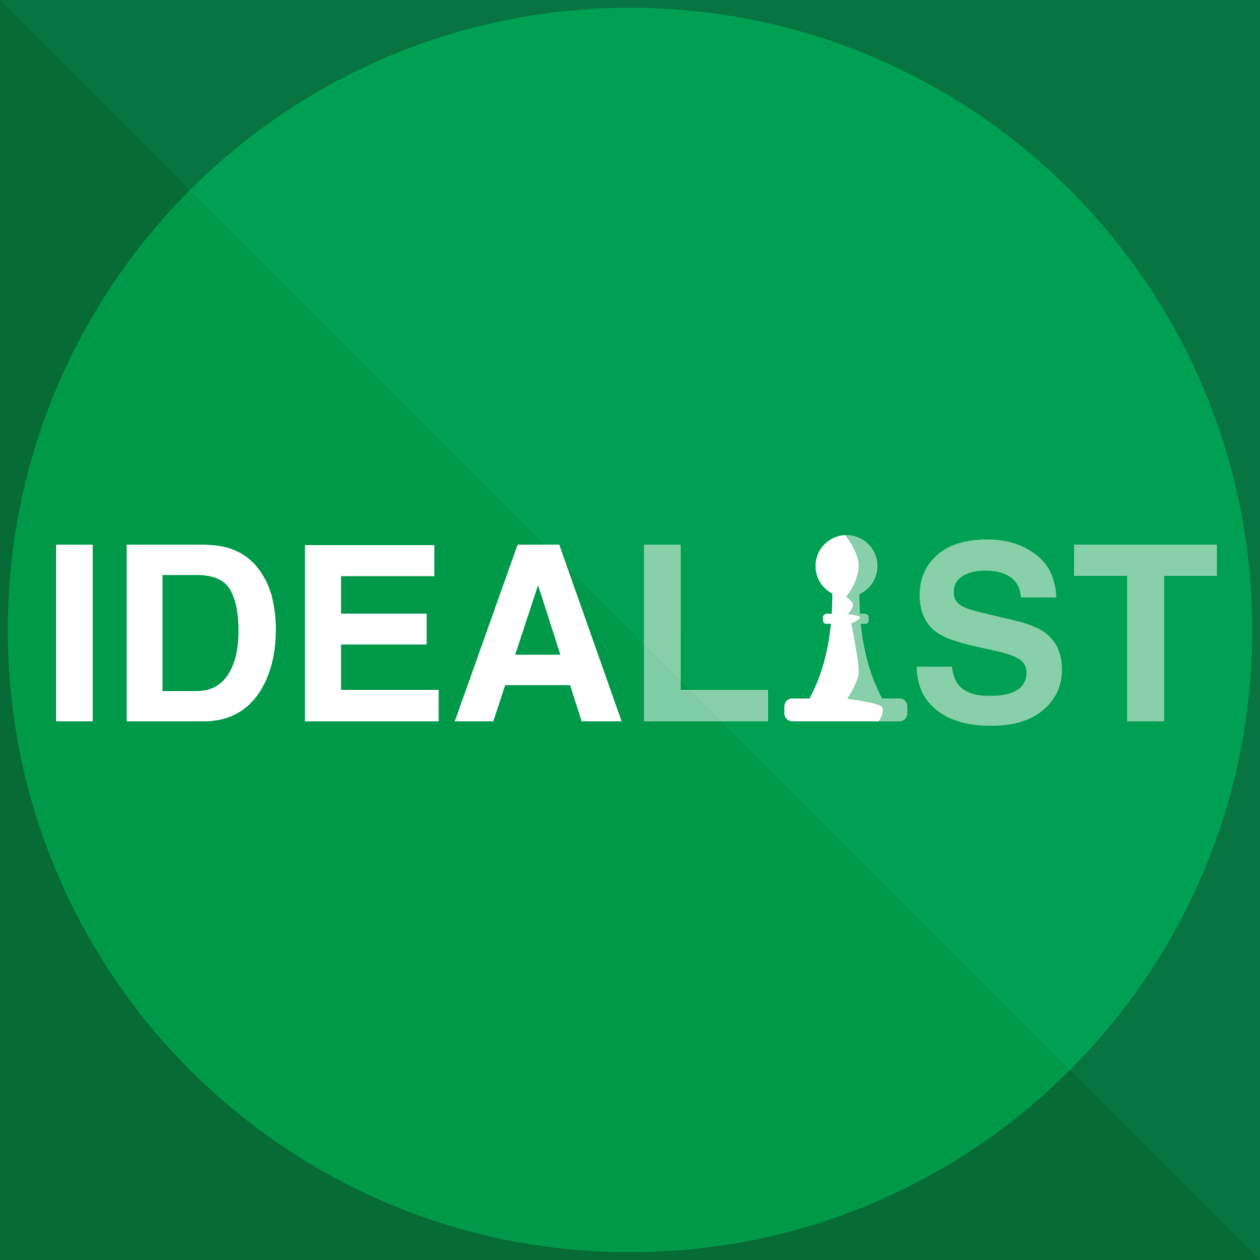 idealist-logo-design